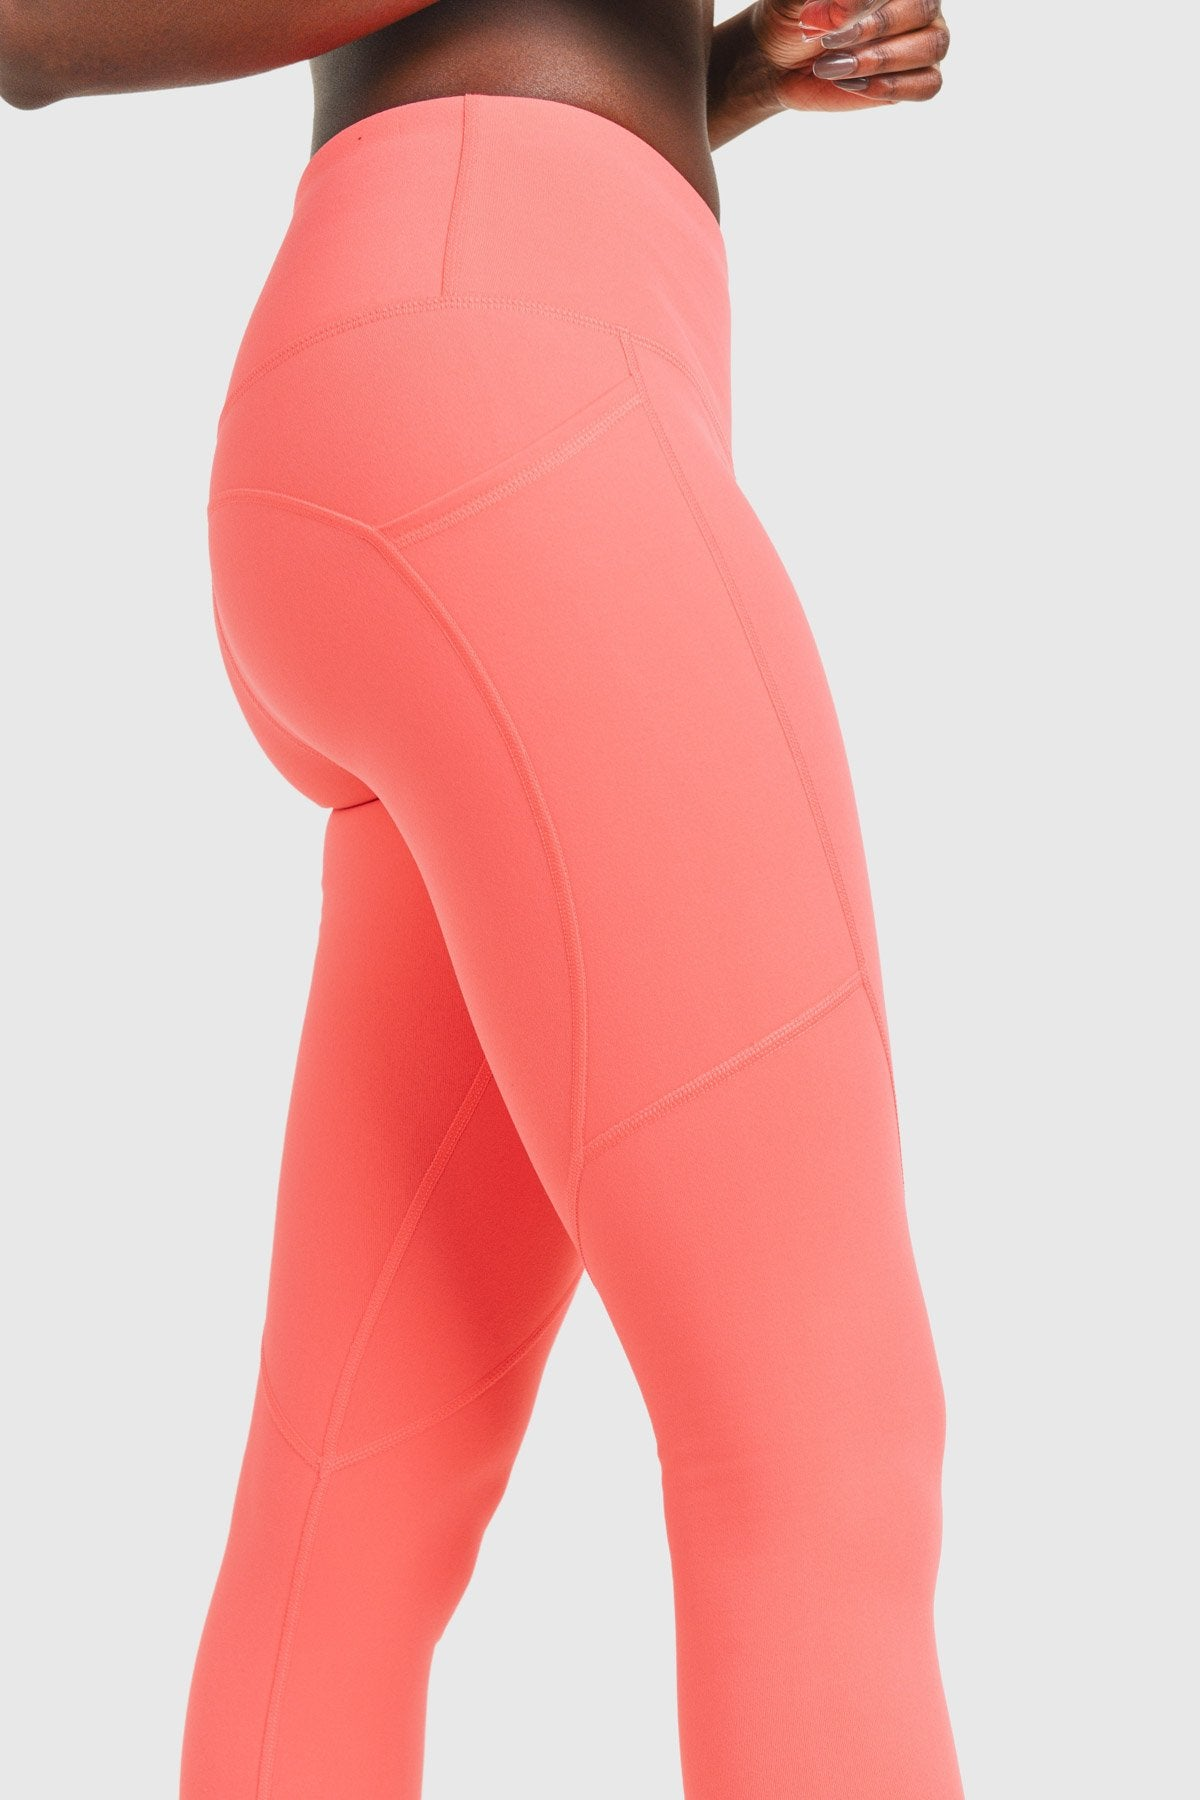 Essential Thermal Highwaist Leggings with Pockets